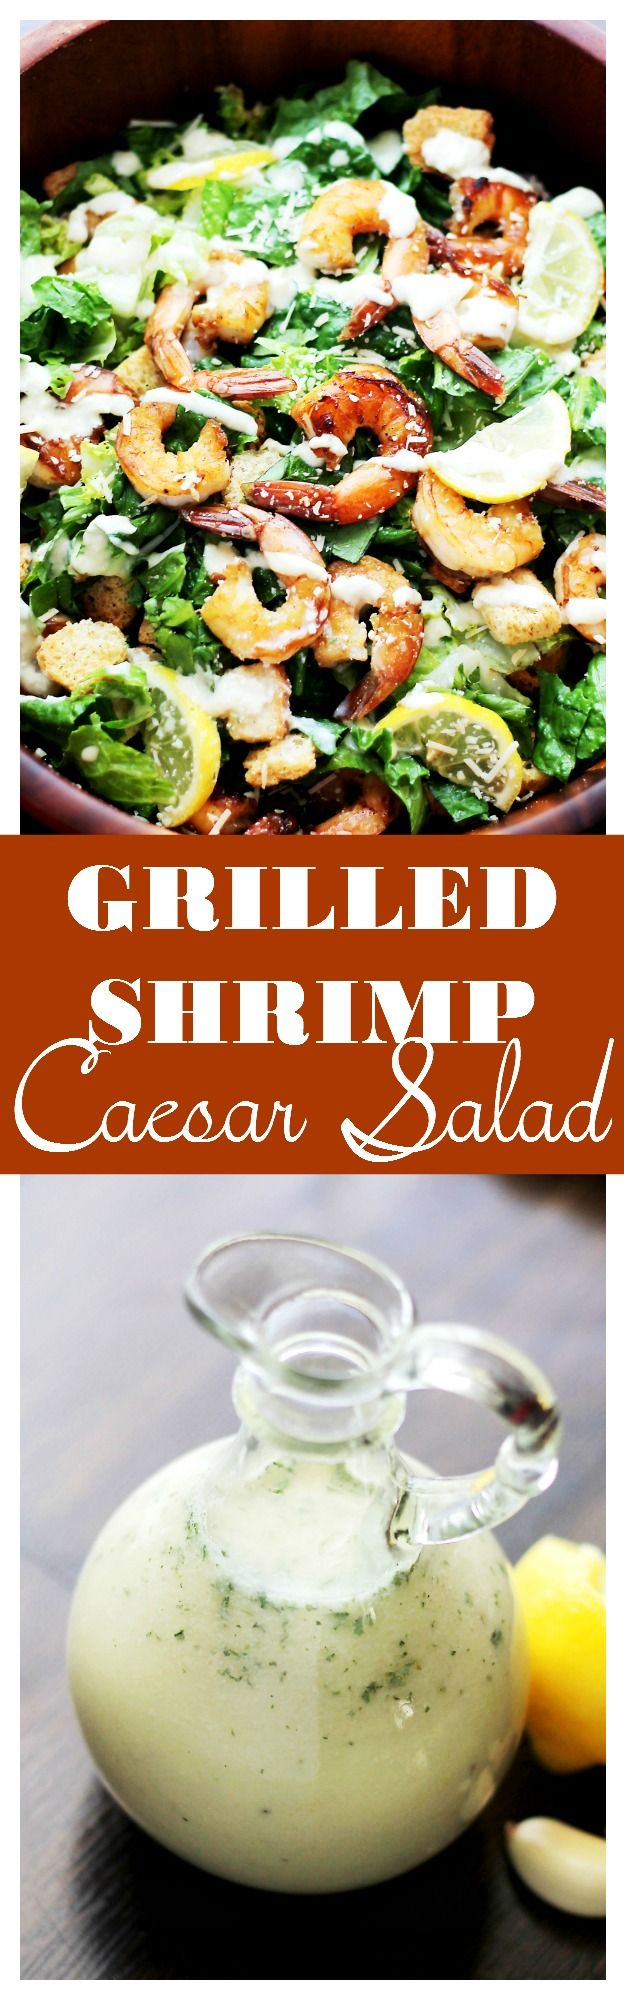 Grilled Shrimp Caesar Salad with Homemade Light Caesar Dressing | www.diethood.com | Crunchy and creamy classic caesar salad tossed with juicy grilled shrimp, garlic croutons, and a lightened-up, homemade caesar salad dressing made without egg yolks! | #shrimp #salad